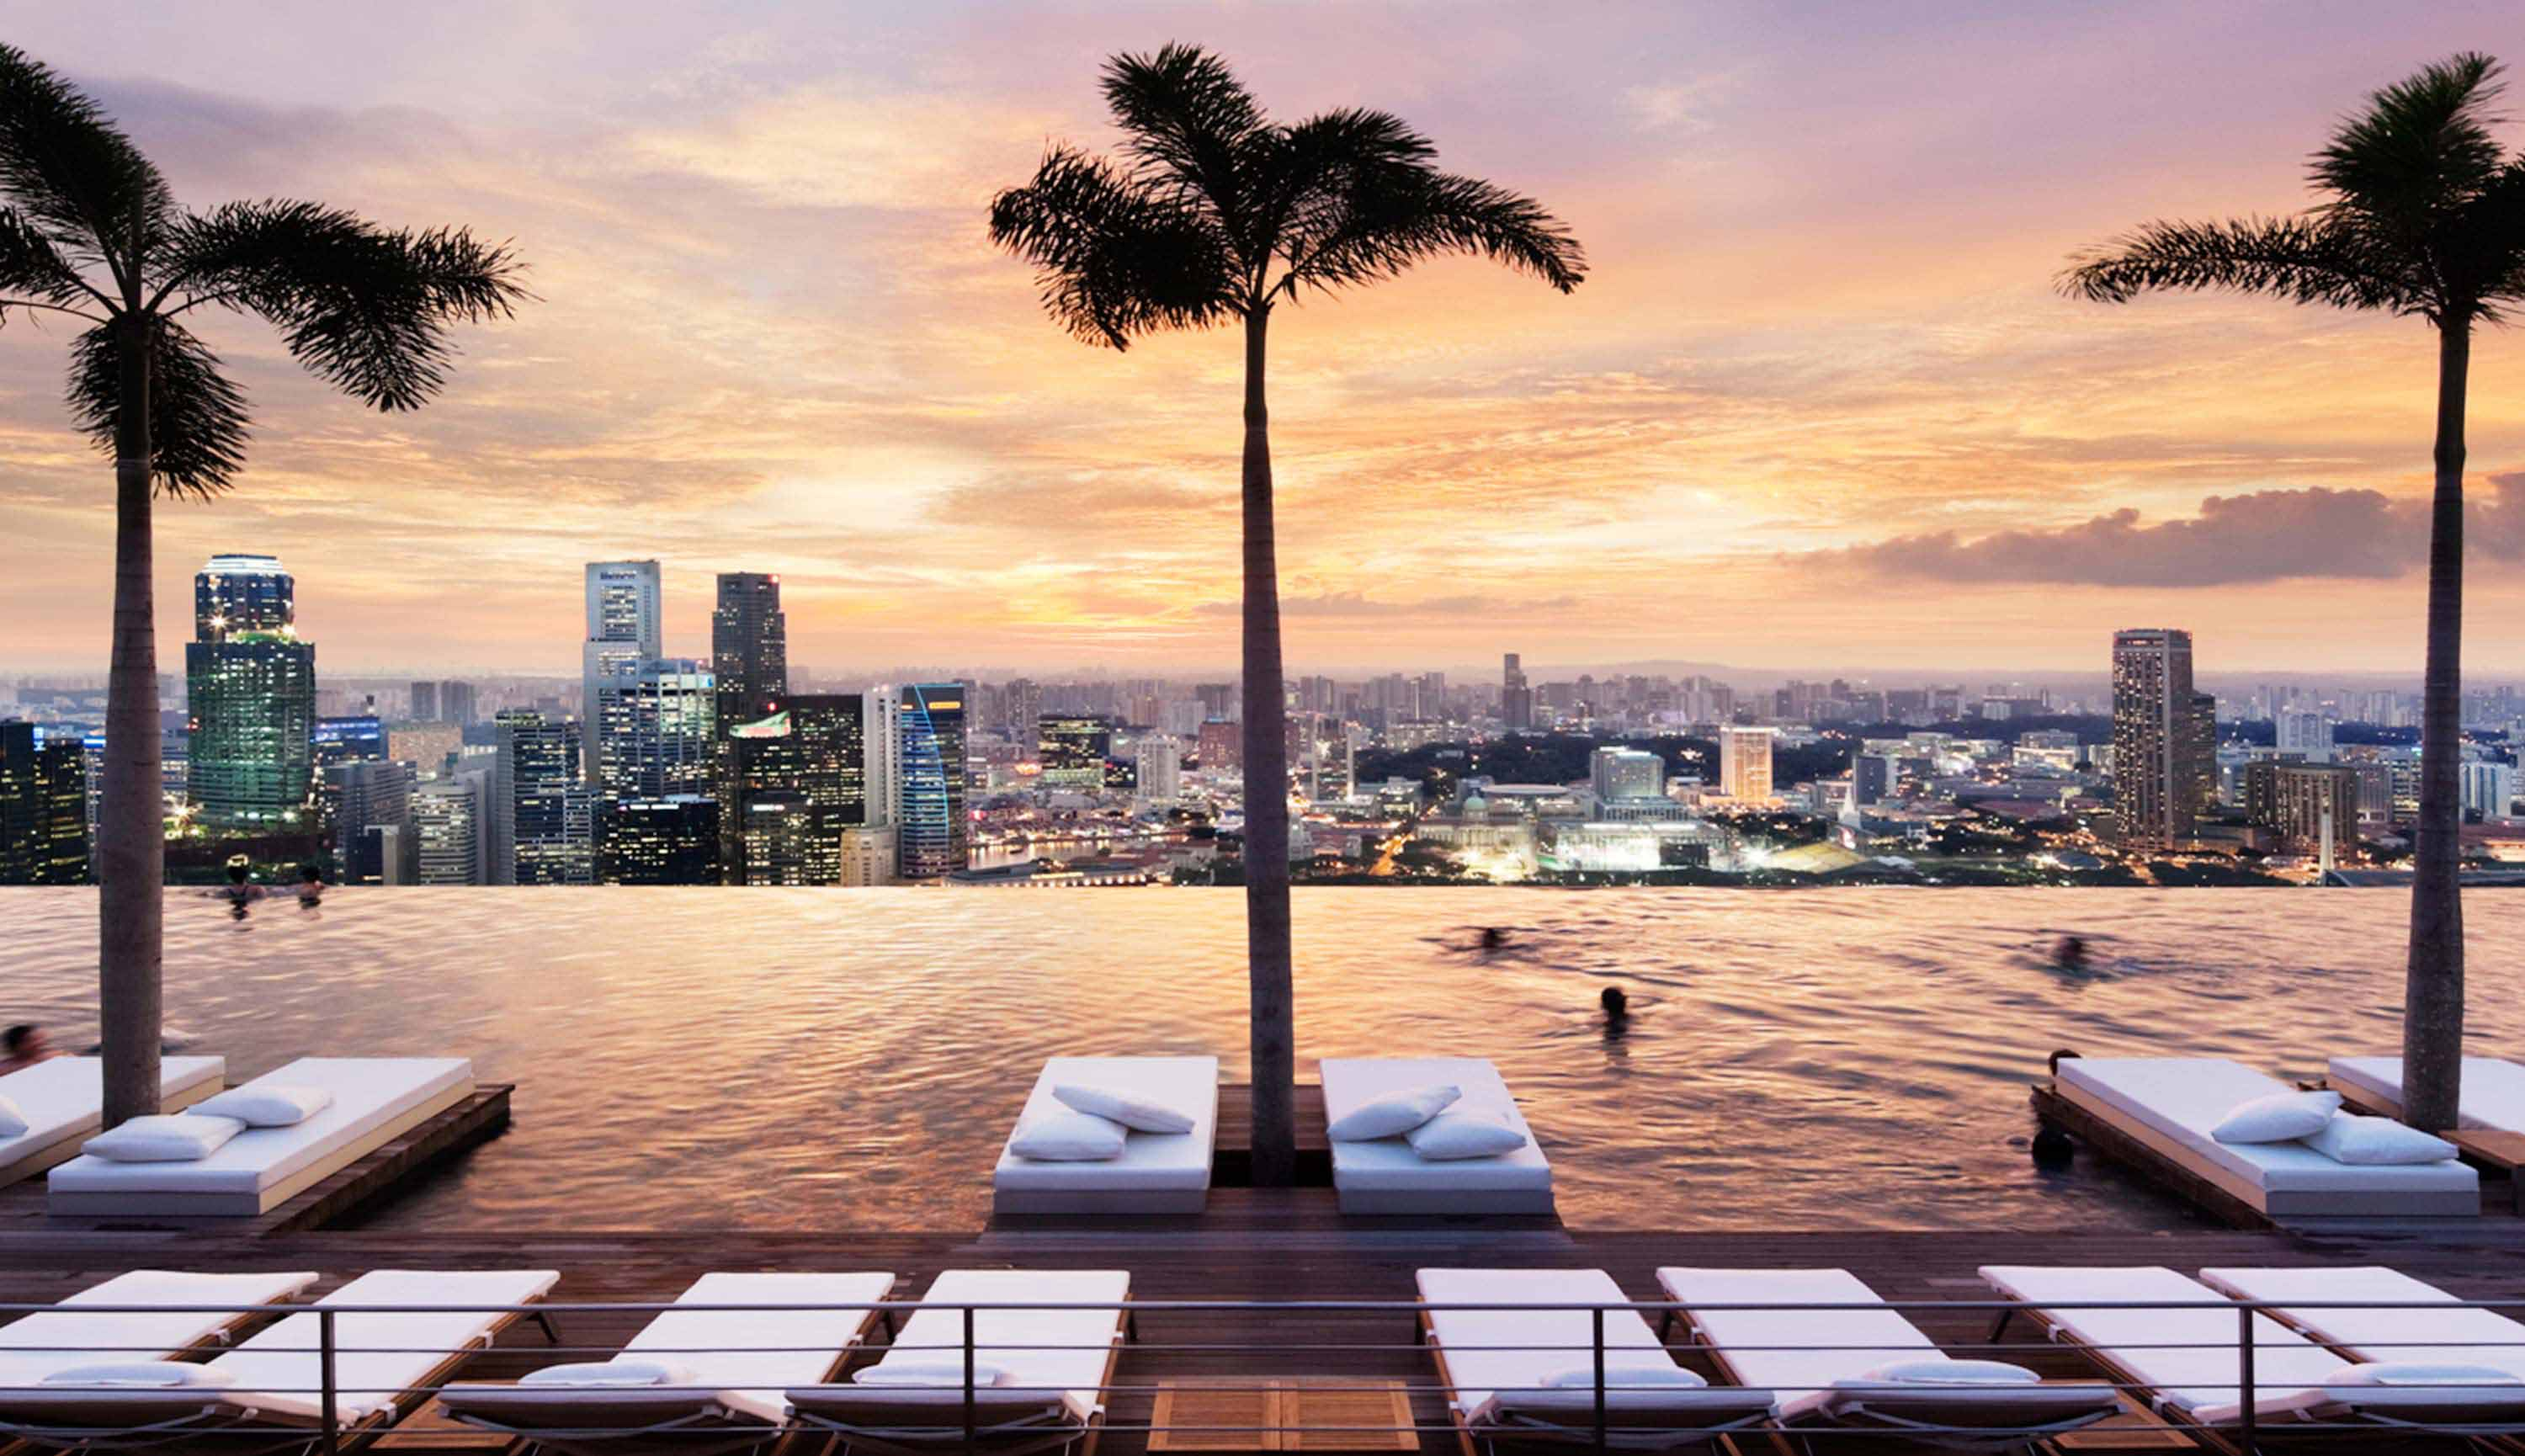 Top 13 des plus belles piscines du monde naturelles - Marina bay sands piscina ...